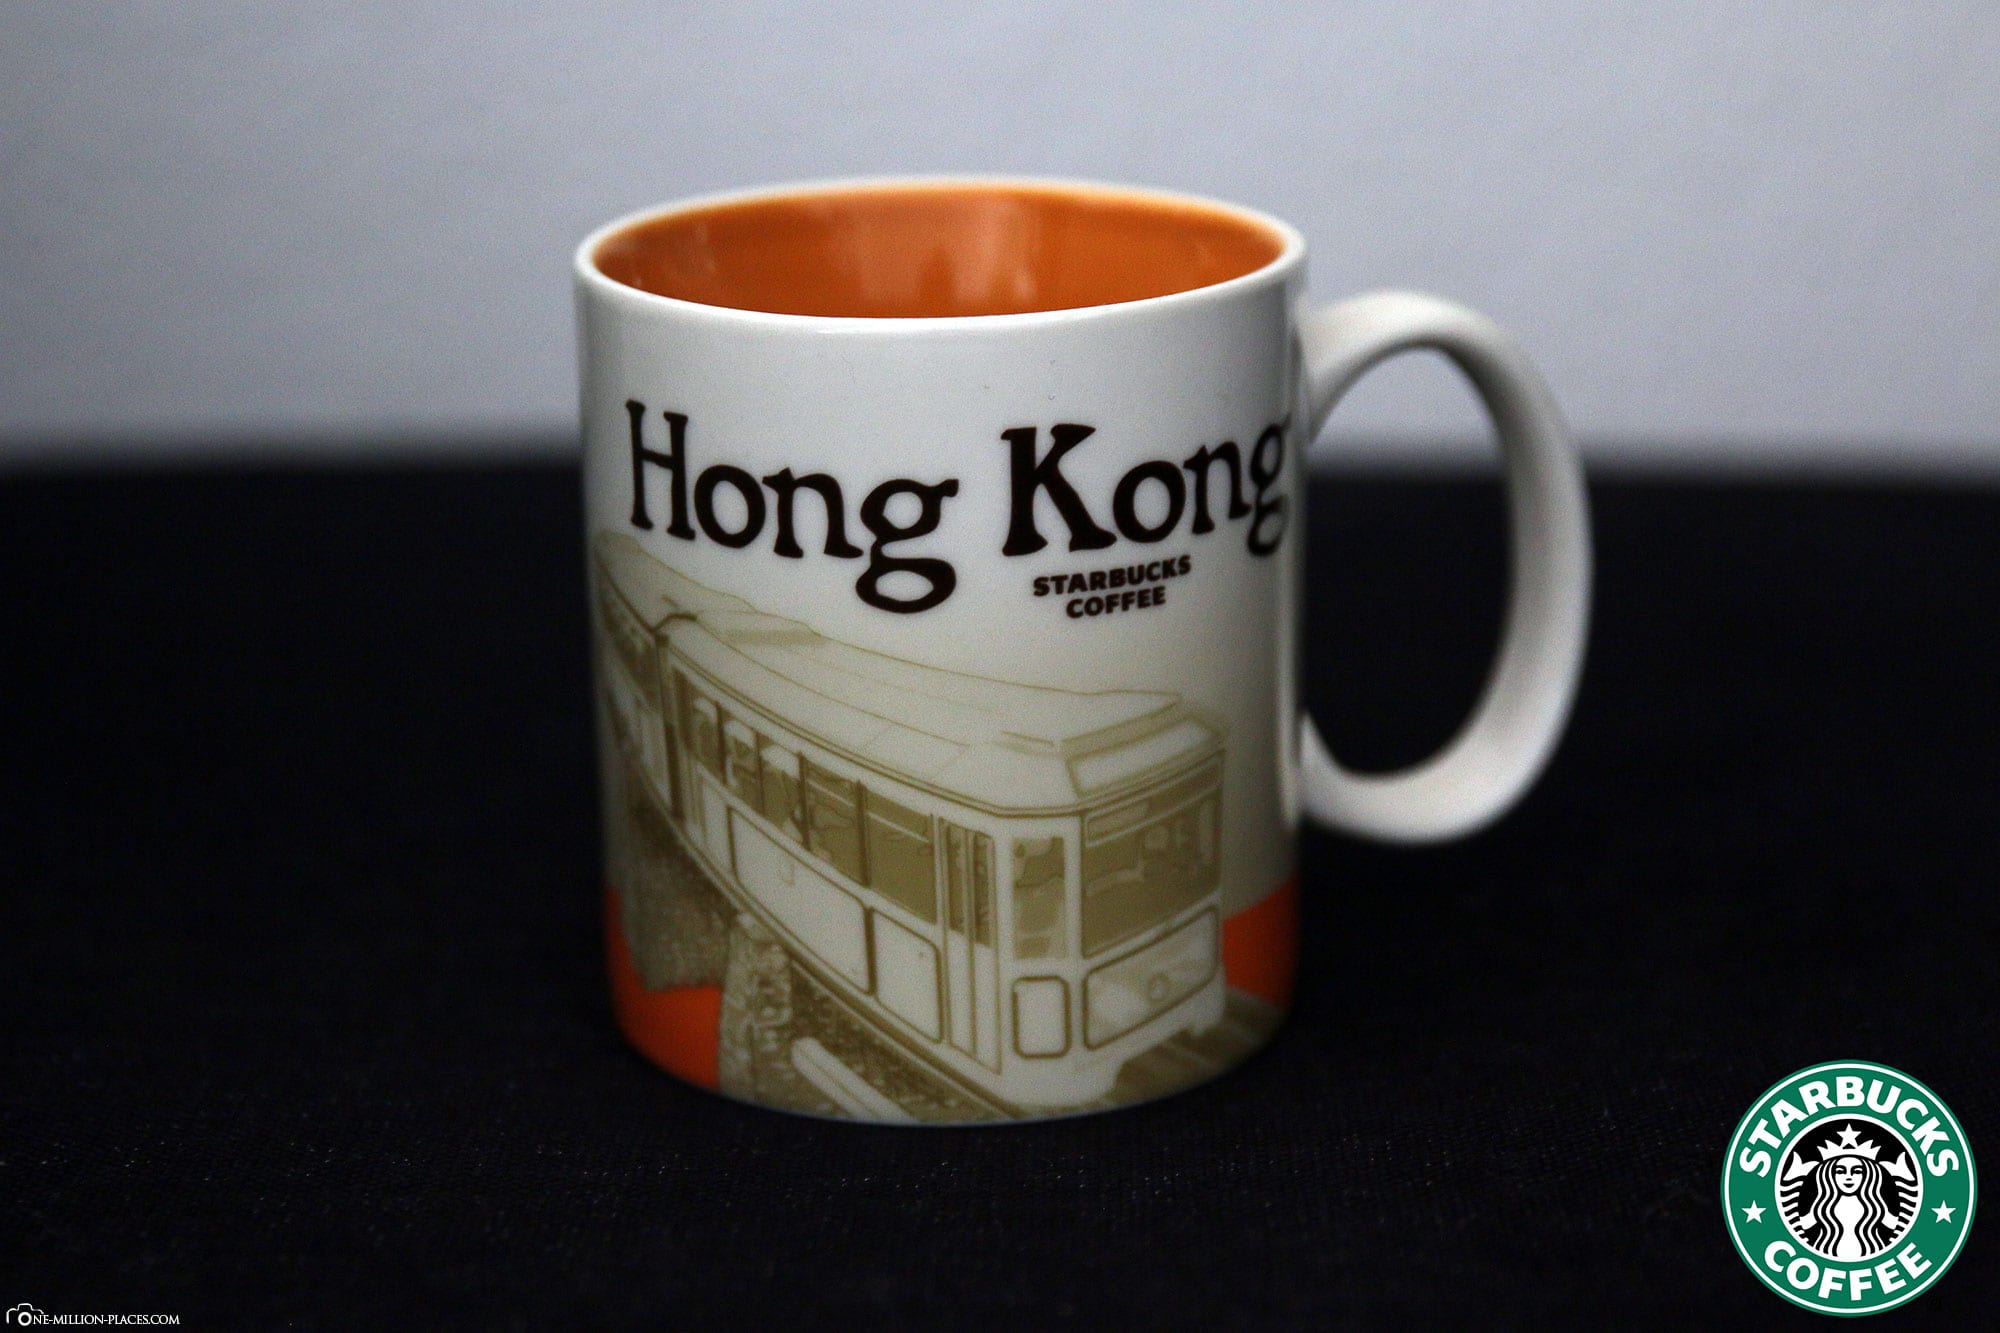 Hong Kong, Starbucks Cup, Global Icon Series, City Mugs, Collection, China, Travelreport